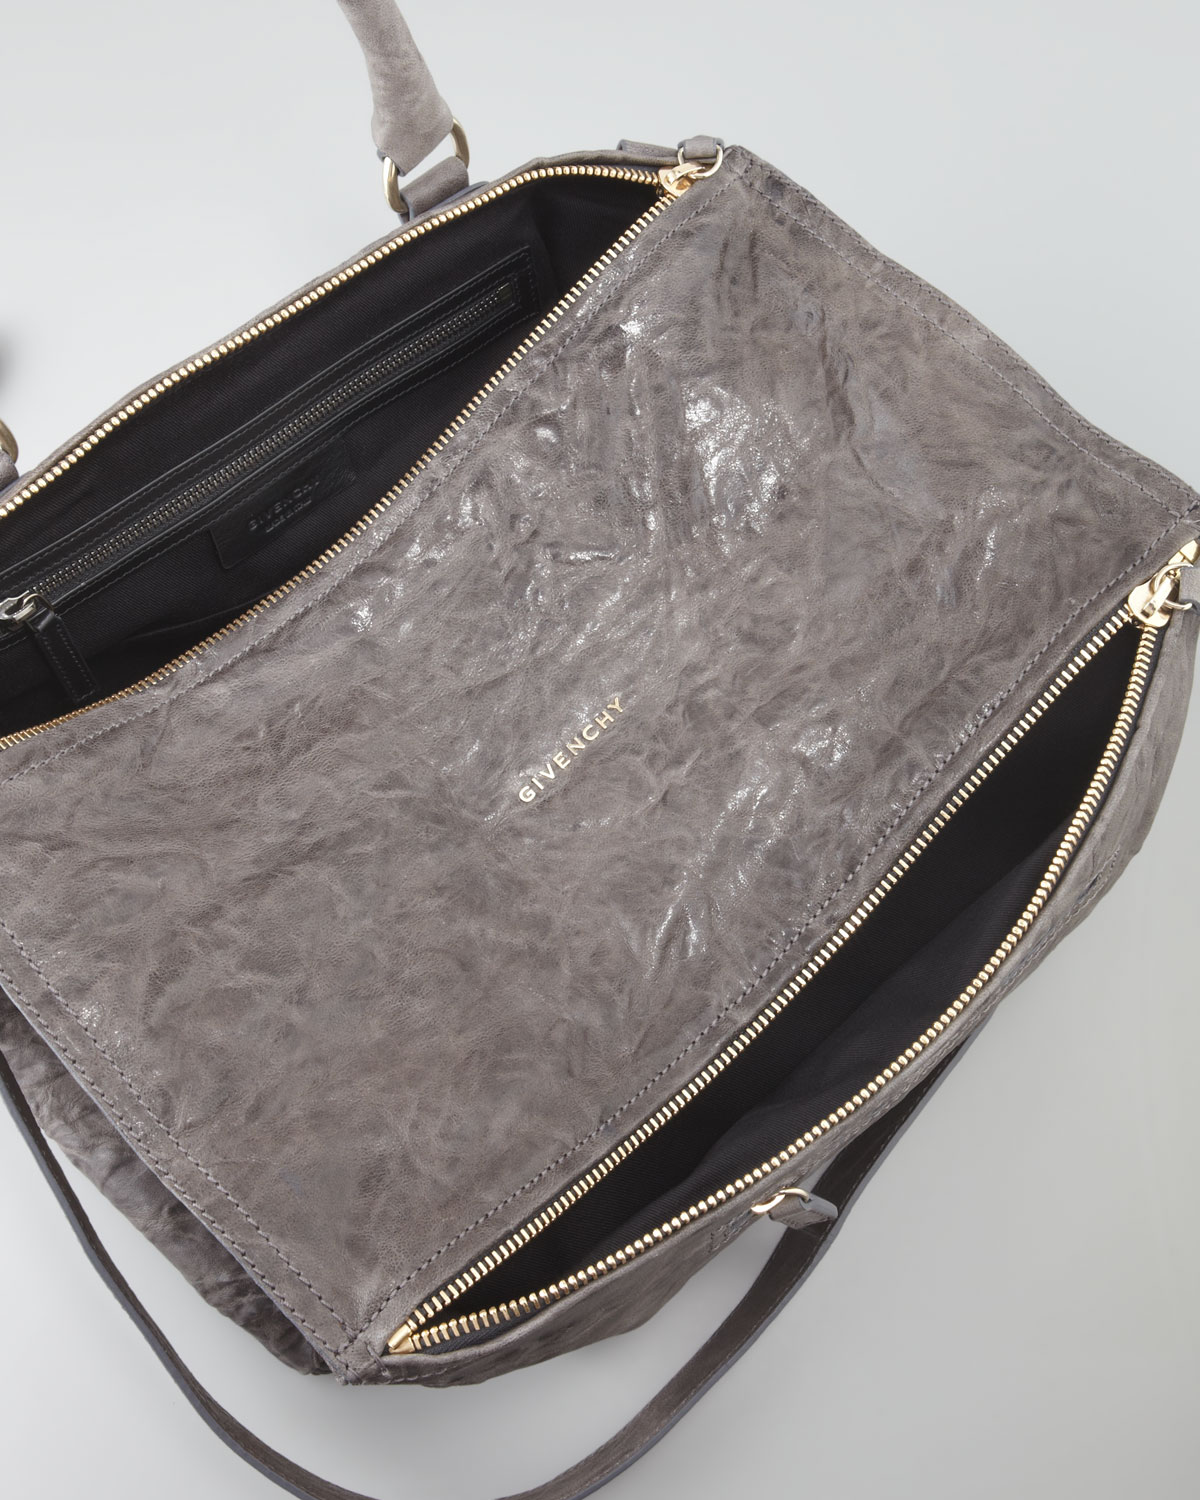 Lyst - Givenchy Pandora Large Pepe Sheepskin Satchel Bag Gray in Gray 32f65be752c8d